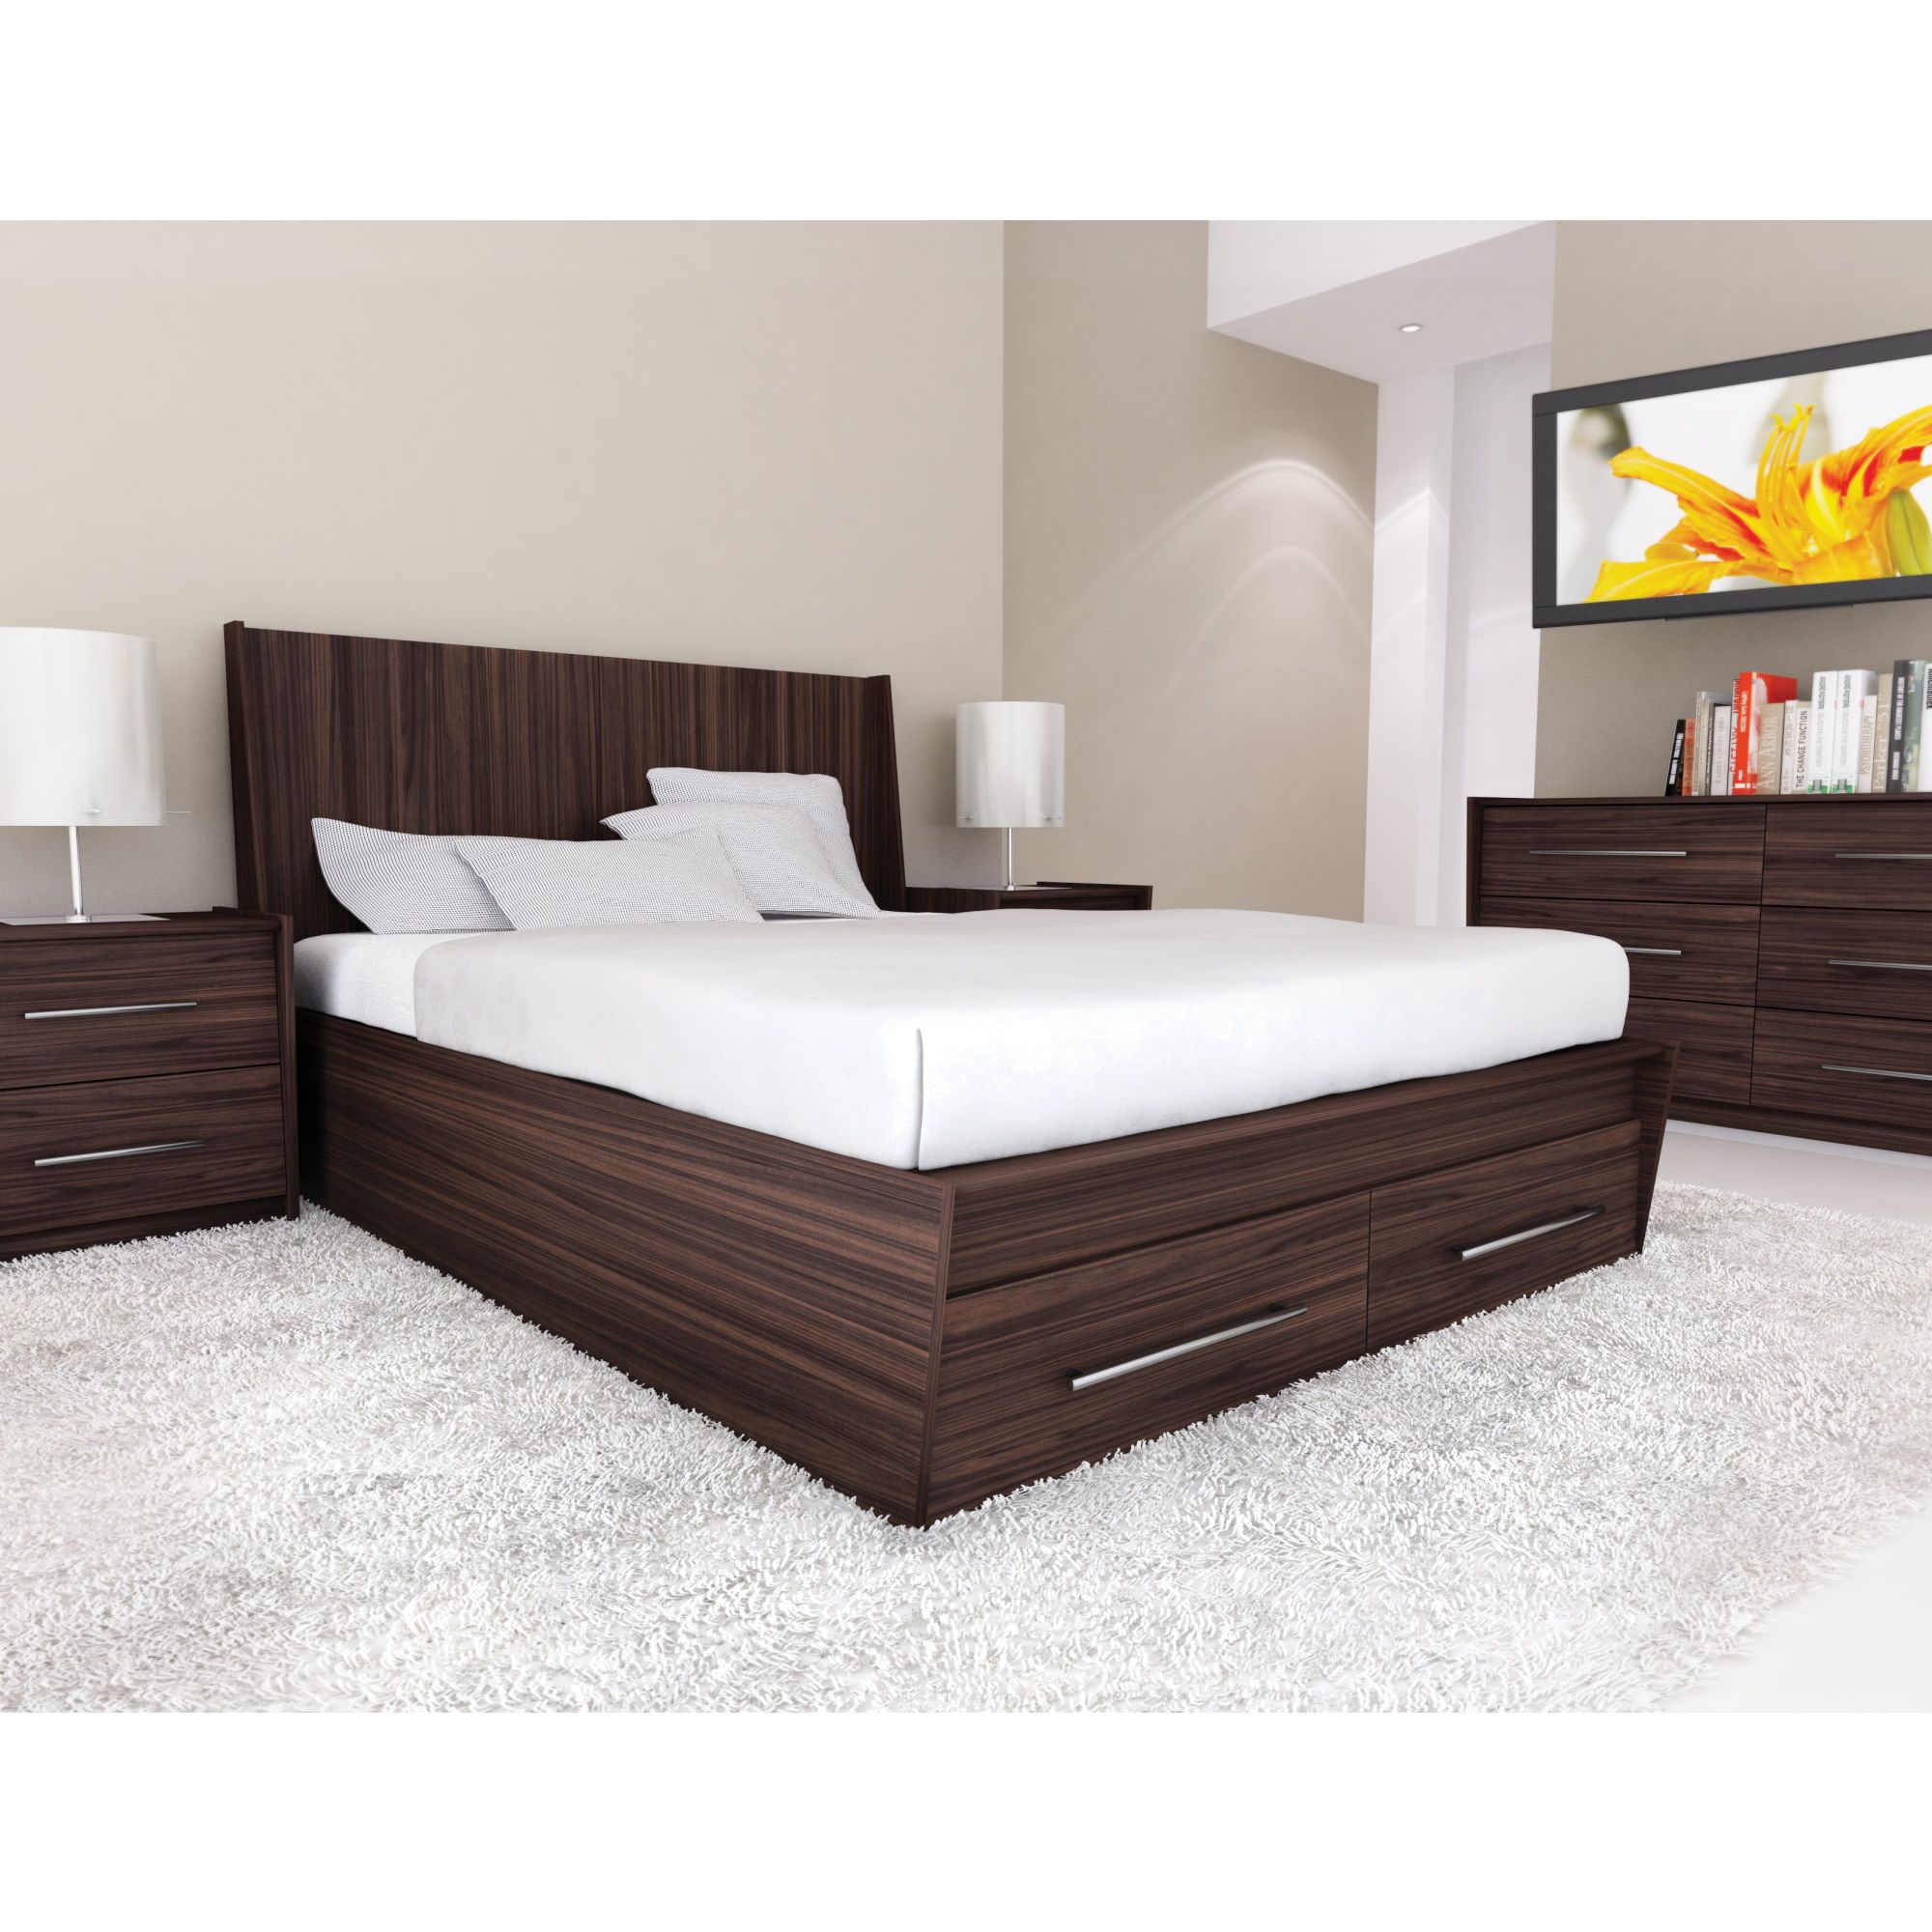 Bed designs for your comfortable bedroom interior design for Latest bed design for bedroom